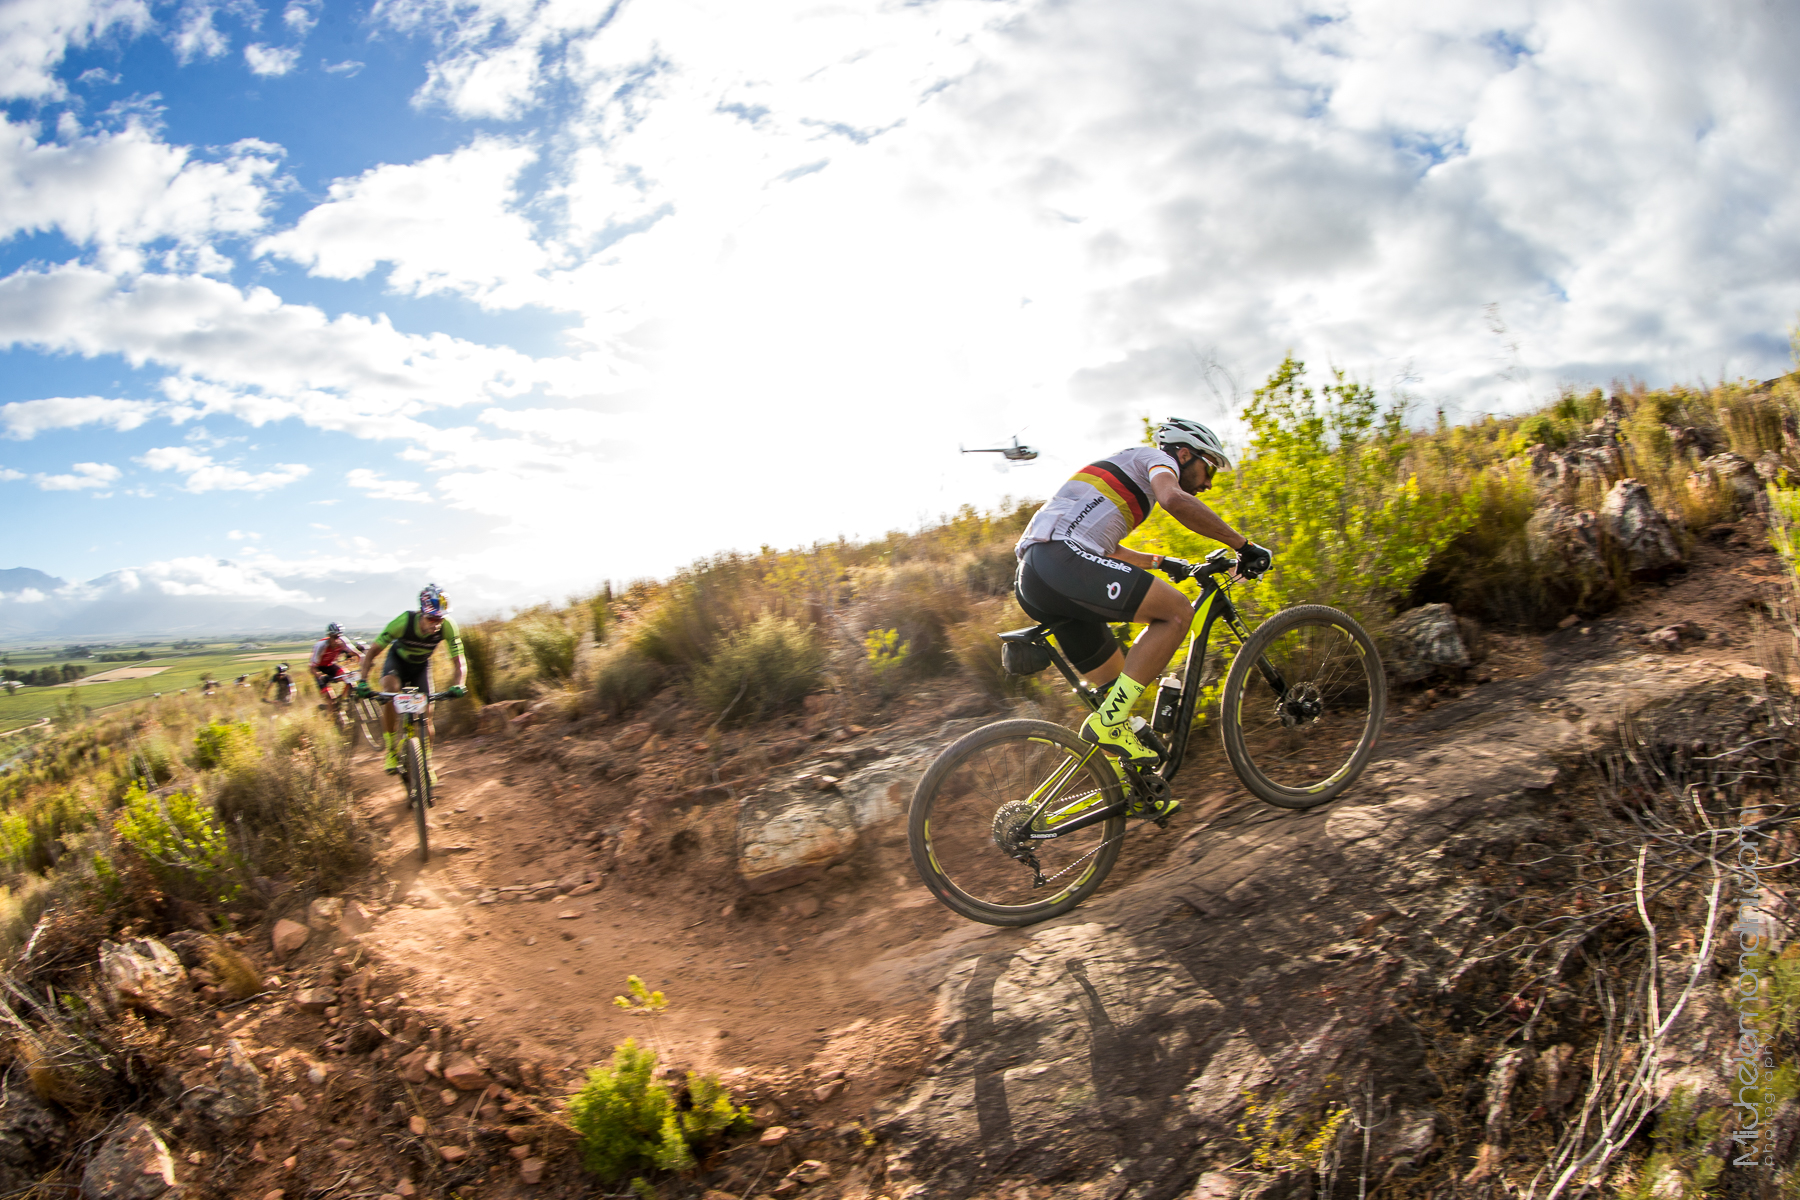 Damn technical trails over there in South Africa - Ph: Michele Mondini